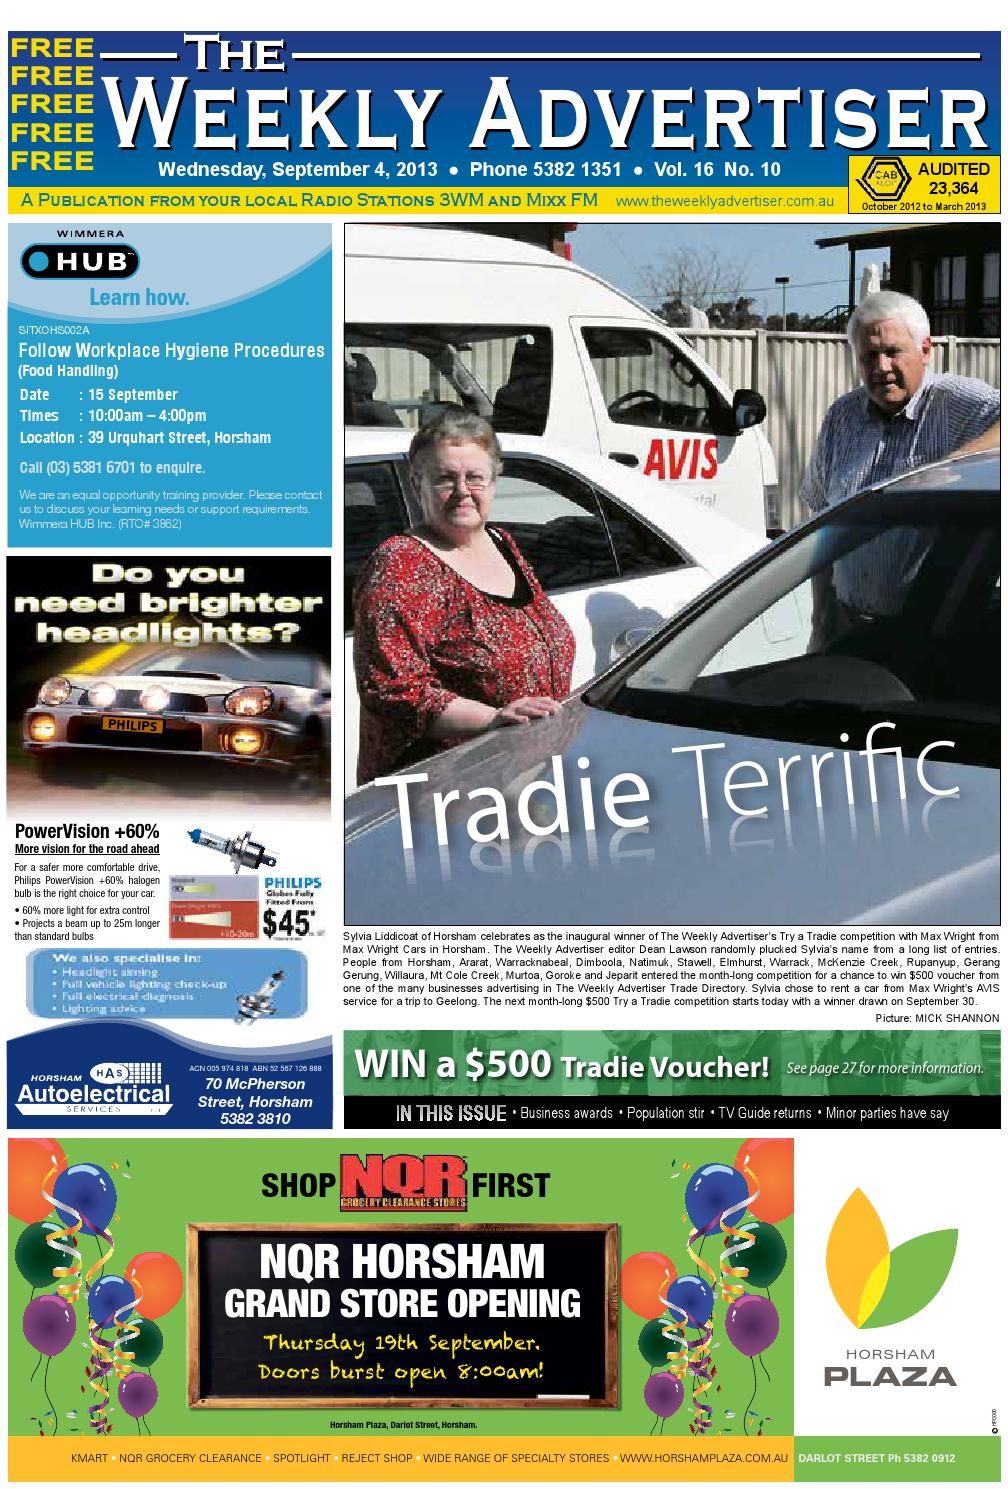 The Weekly Advertiser Wednesday September 4 2013 Edition